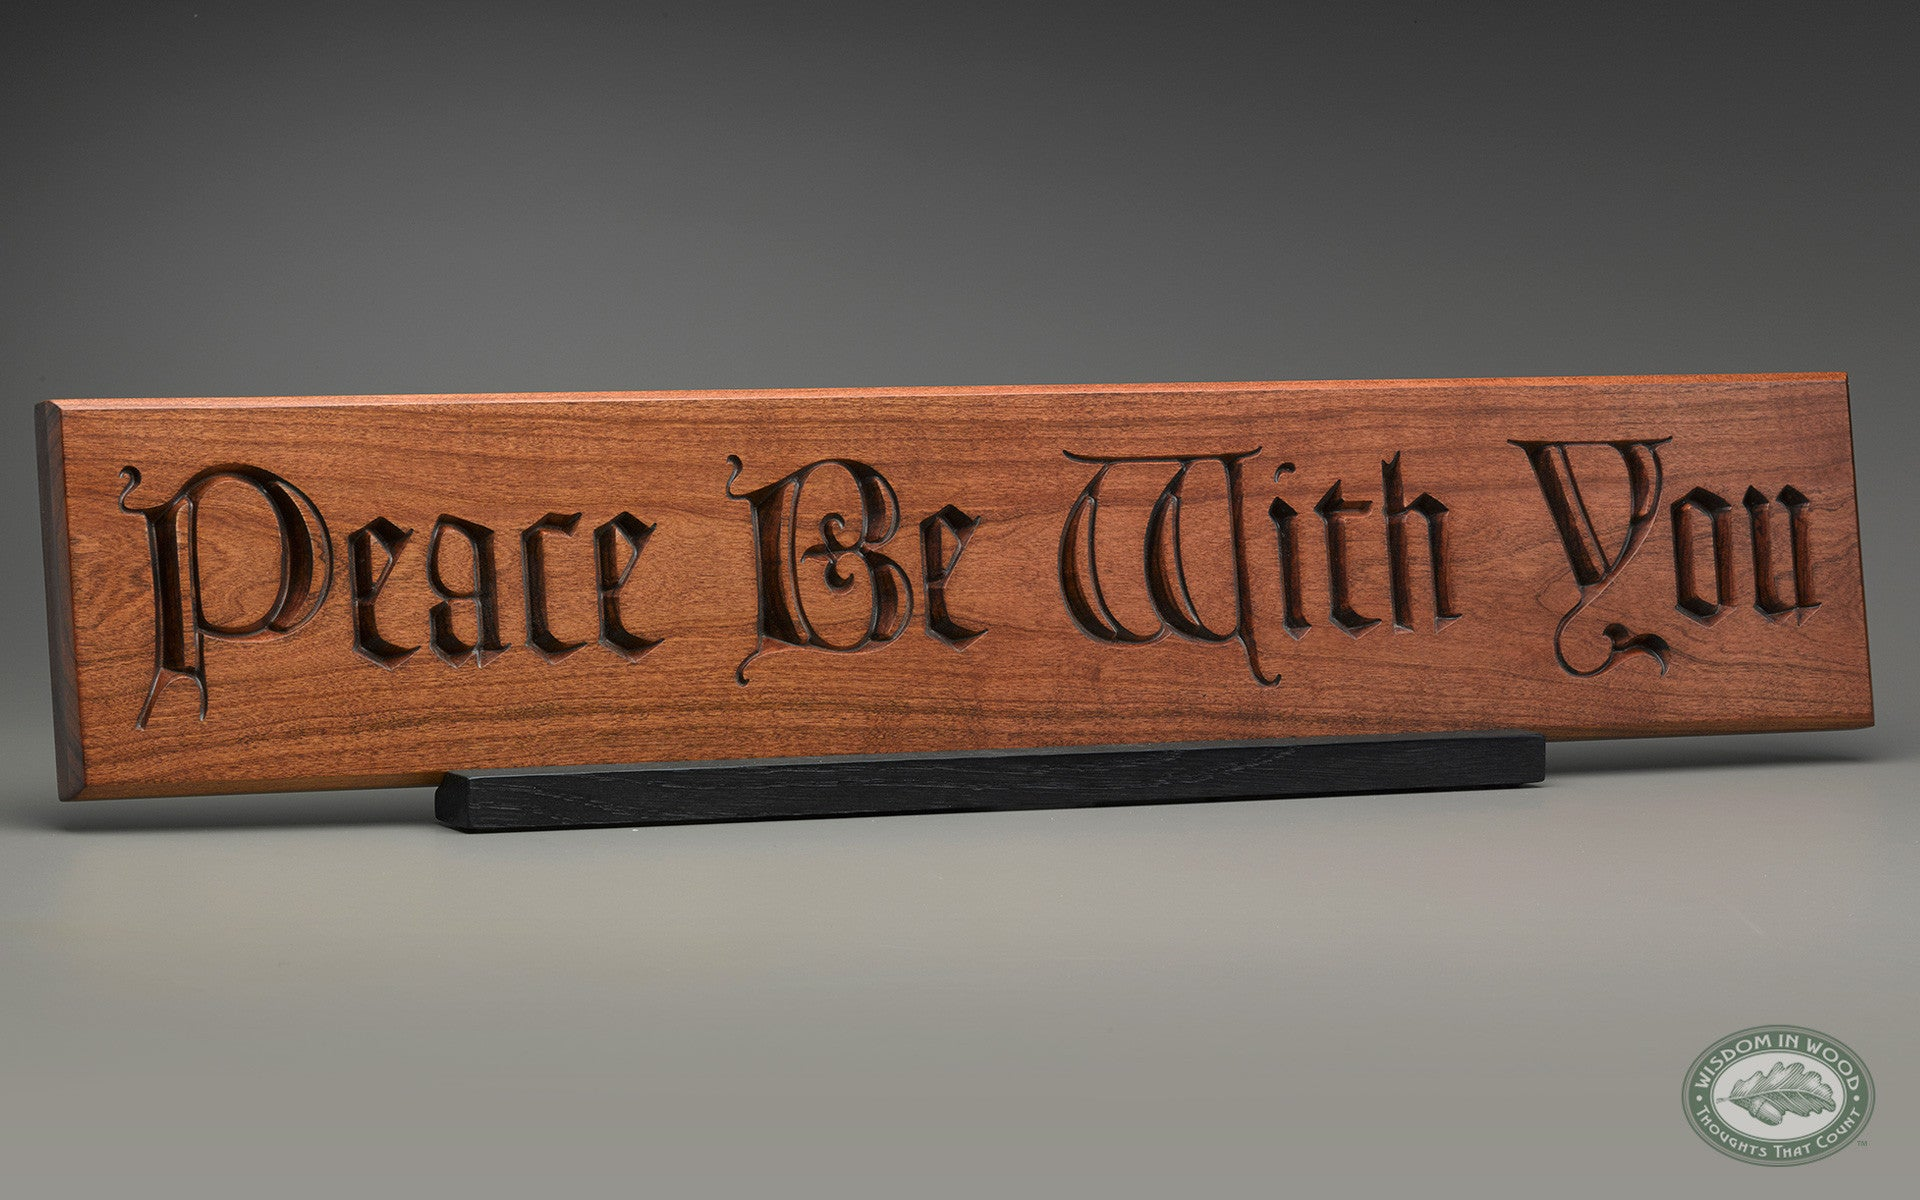 Peace Be With You Carving Good Thinking International Llc